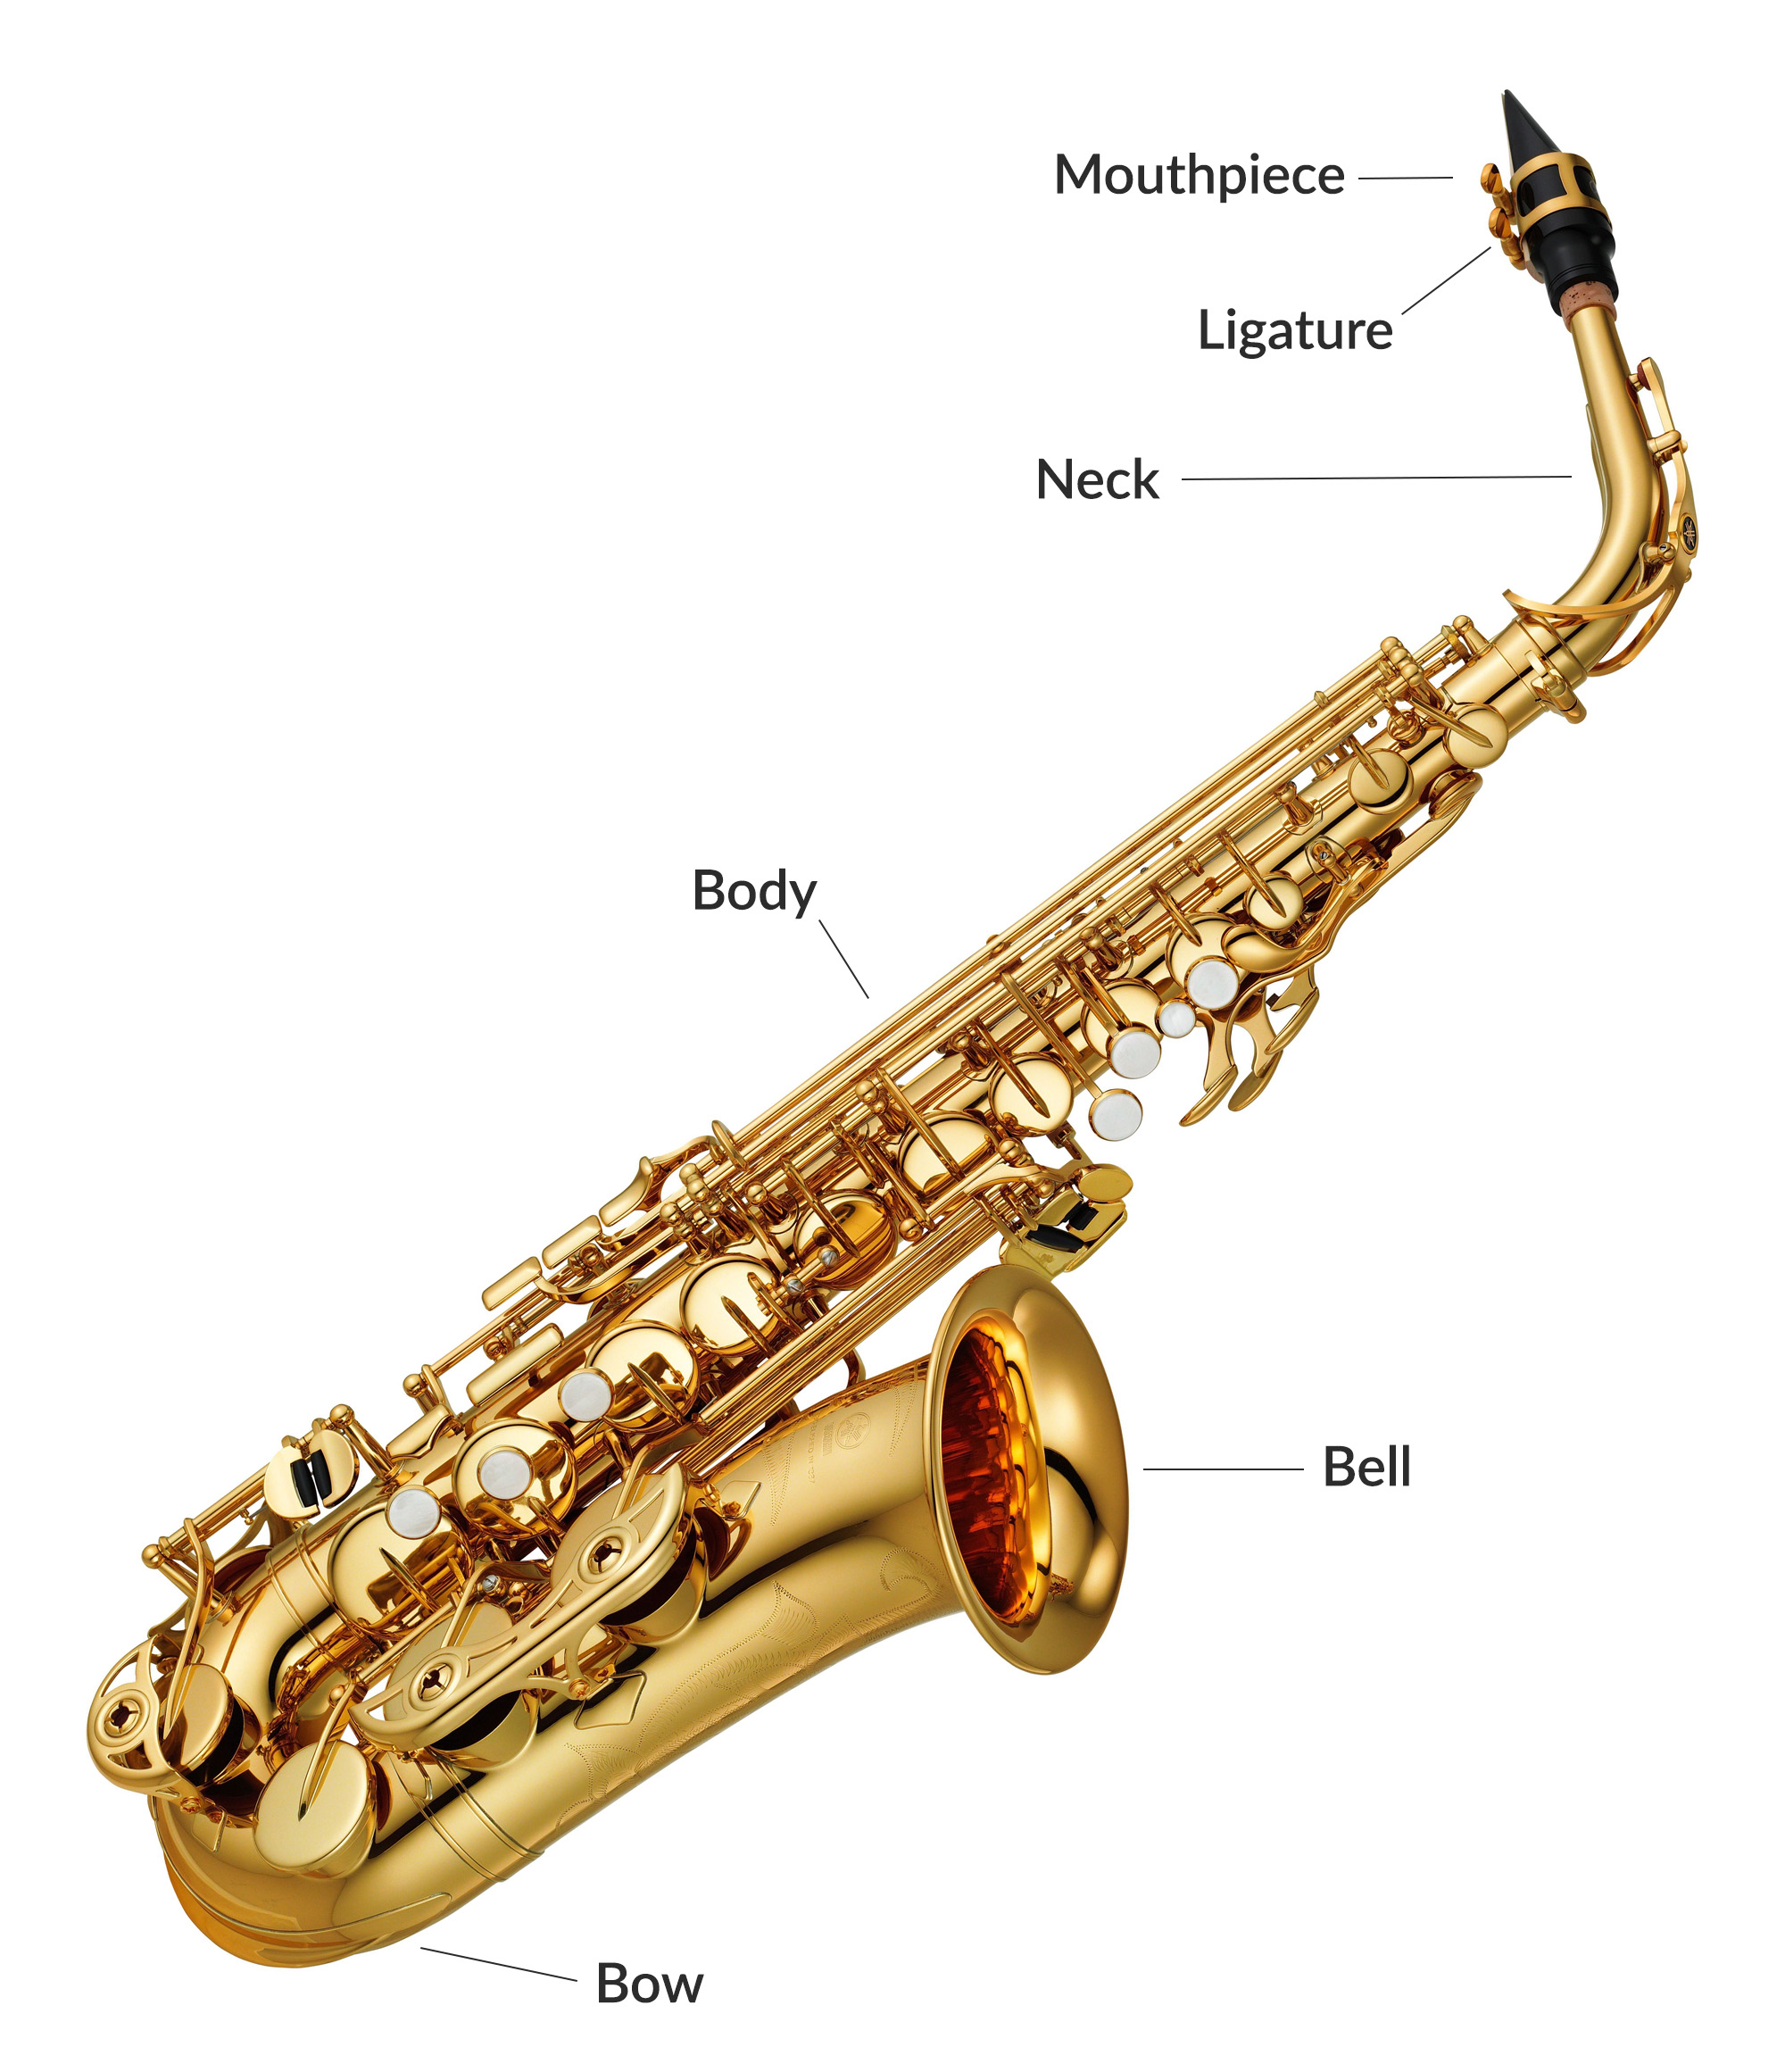 The different sections of an Alto Saxophone